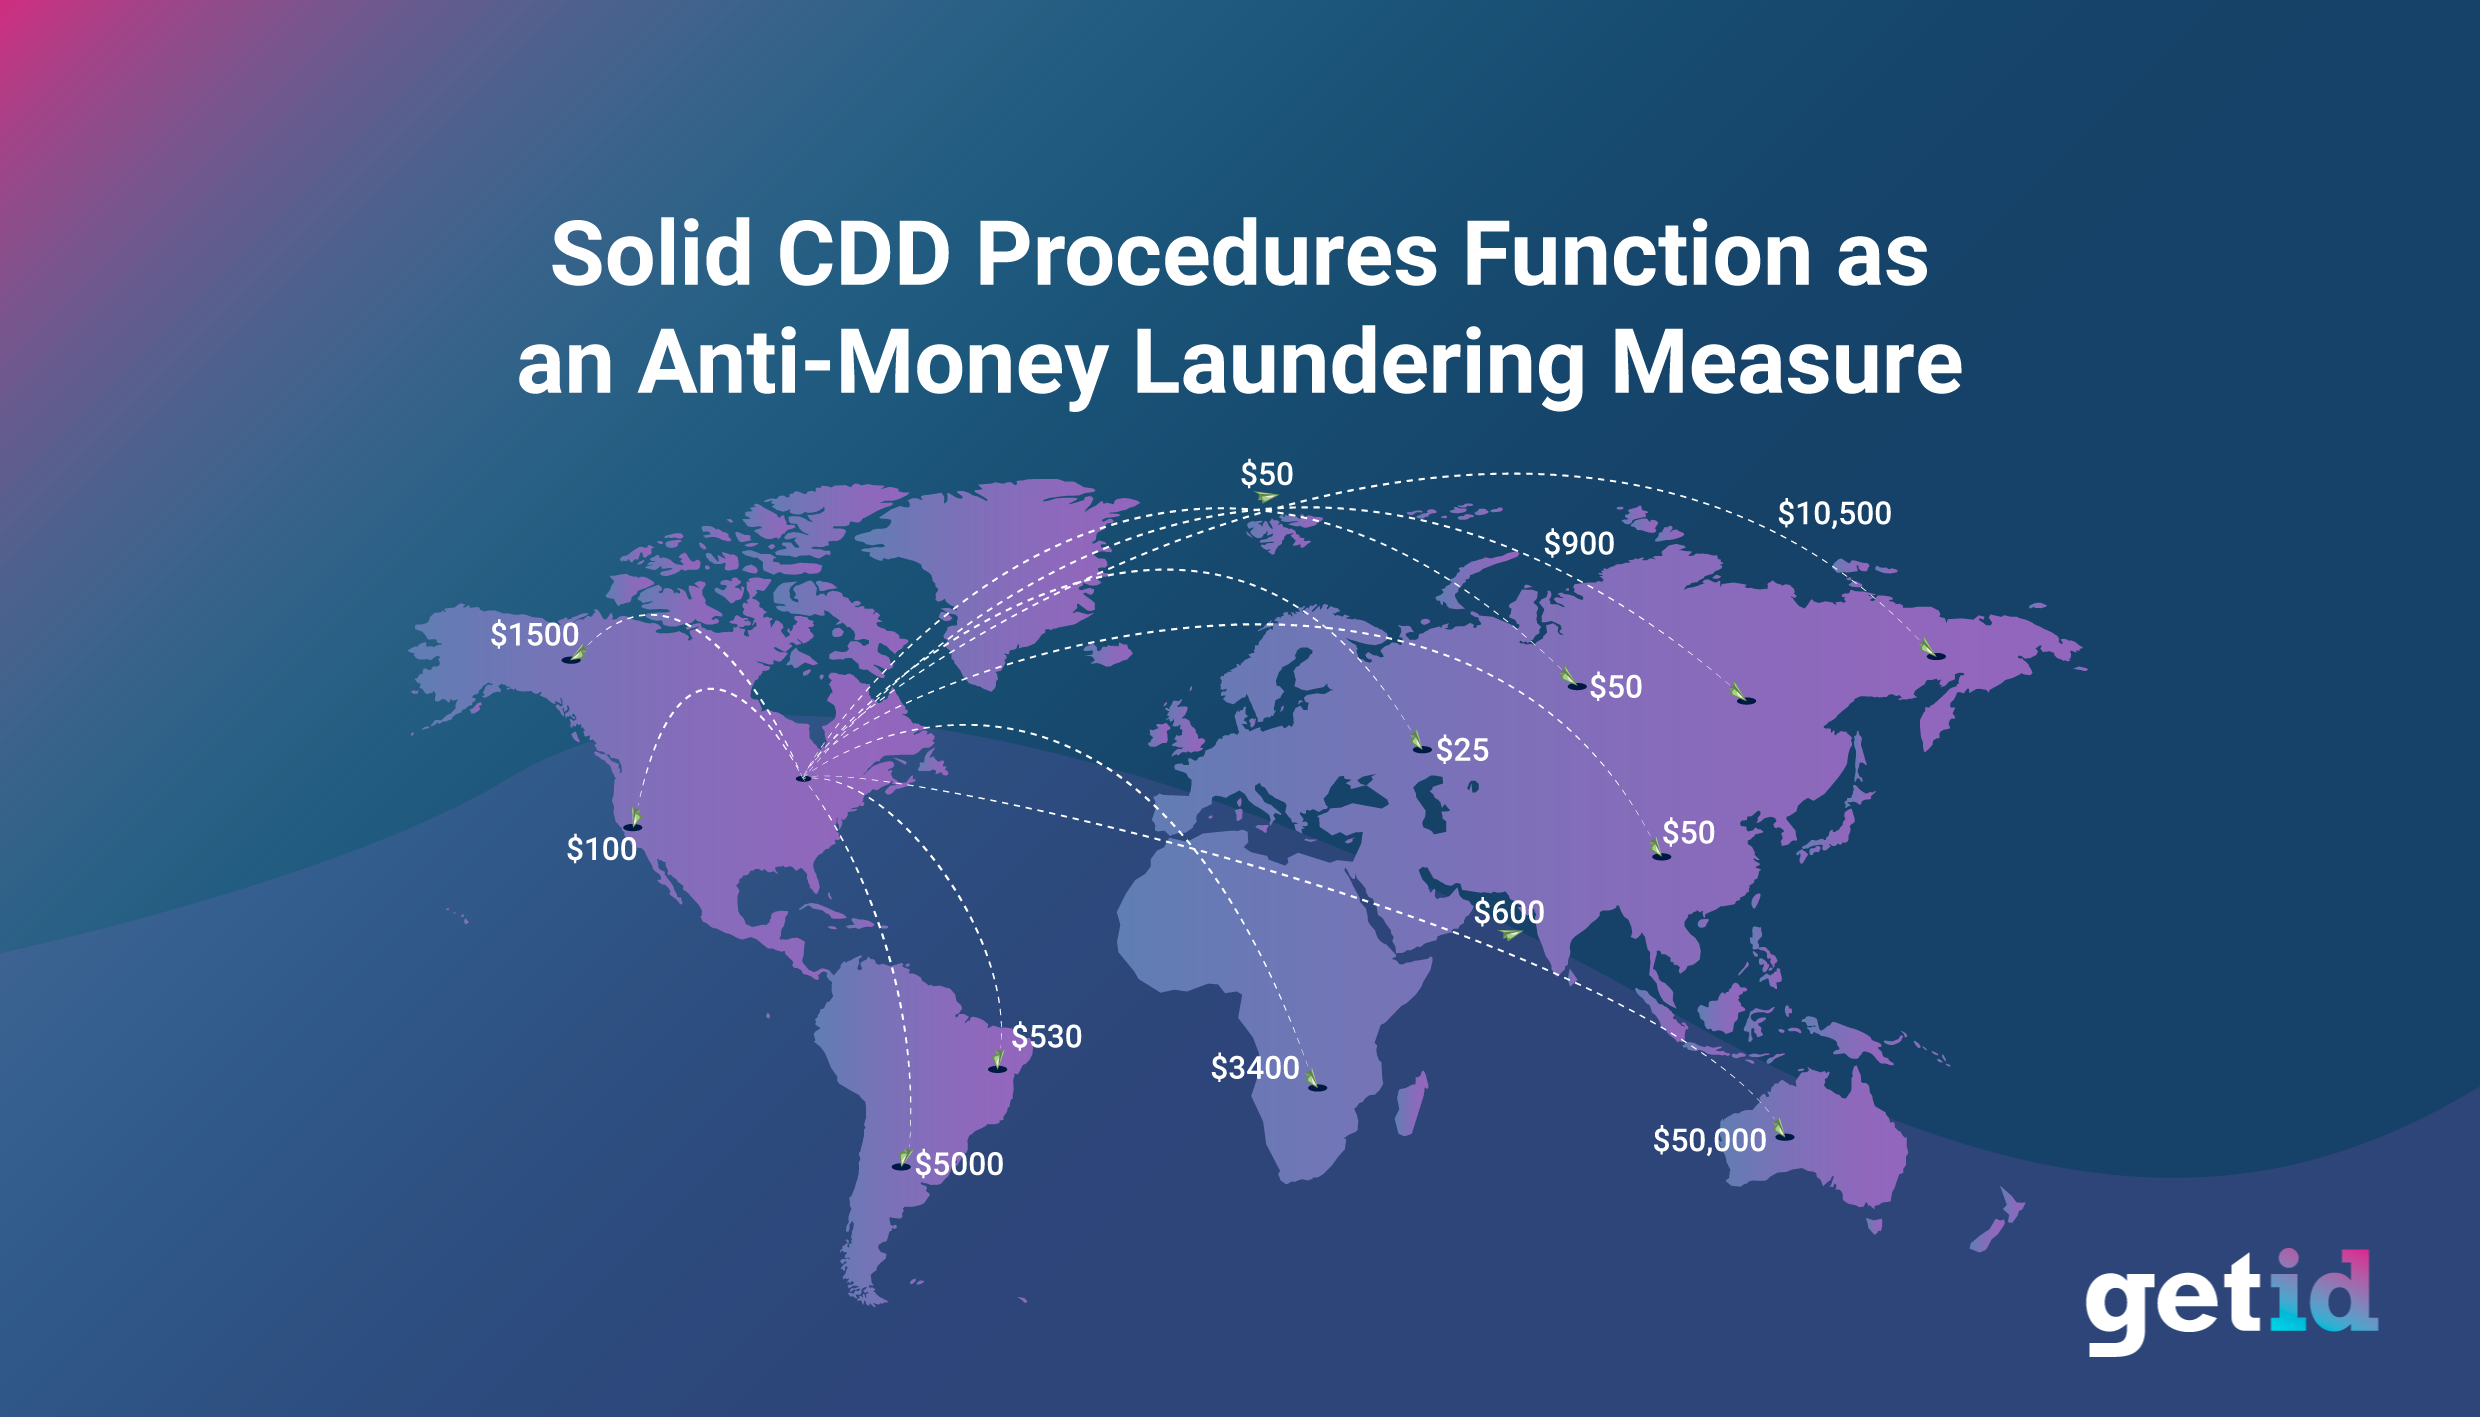 Solid CDD procedures function as Anti-Money Laundering Measure